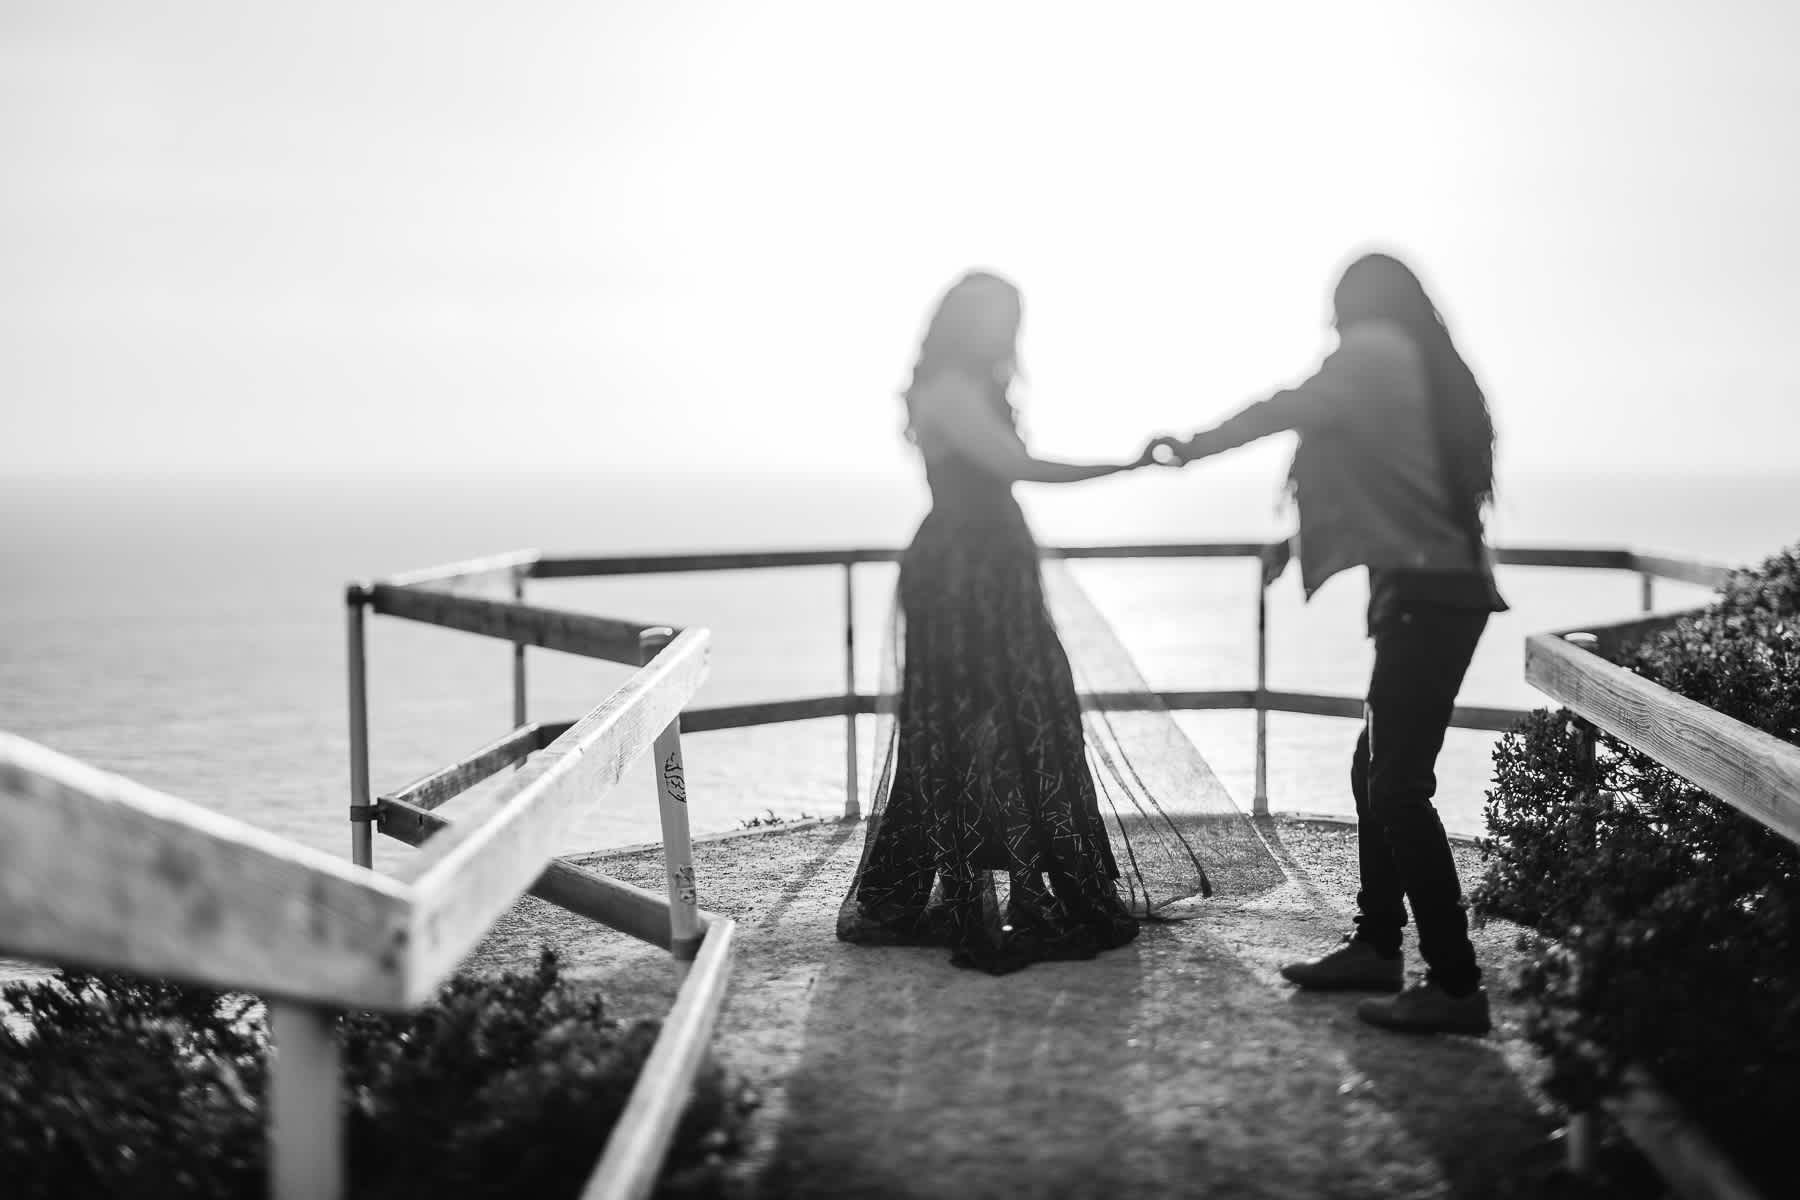 muir-beach-ca-spring-lifestyle-engagement-session-13